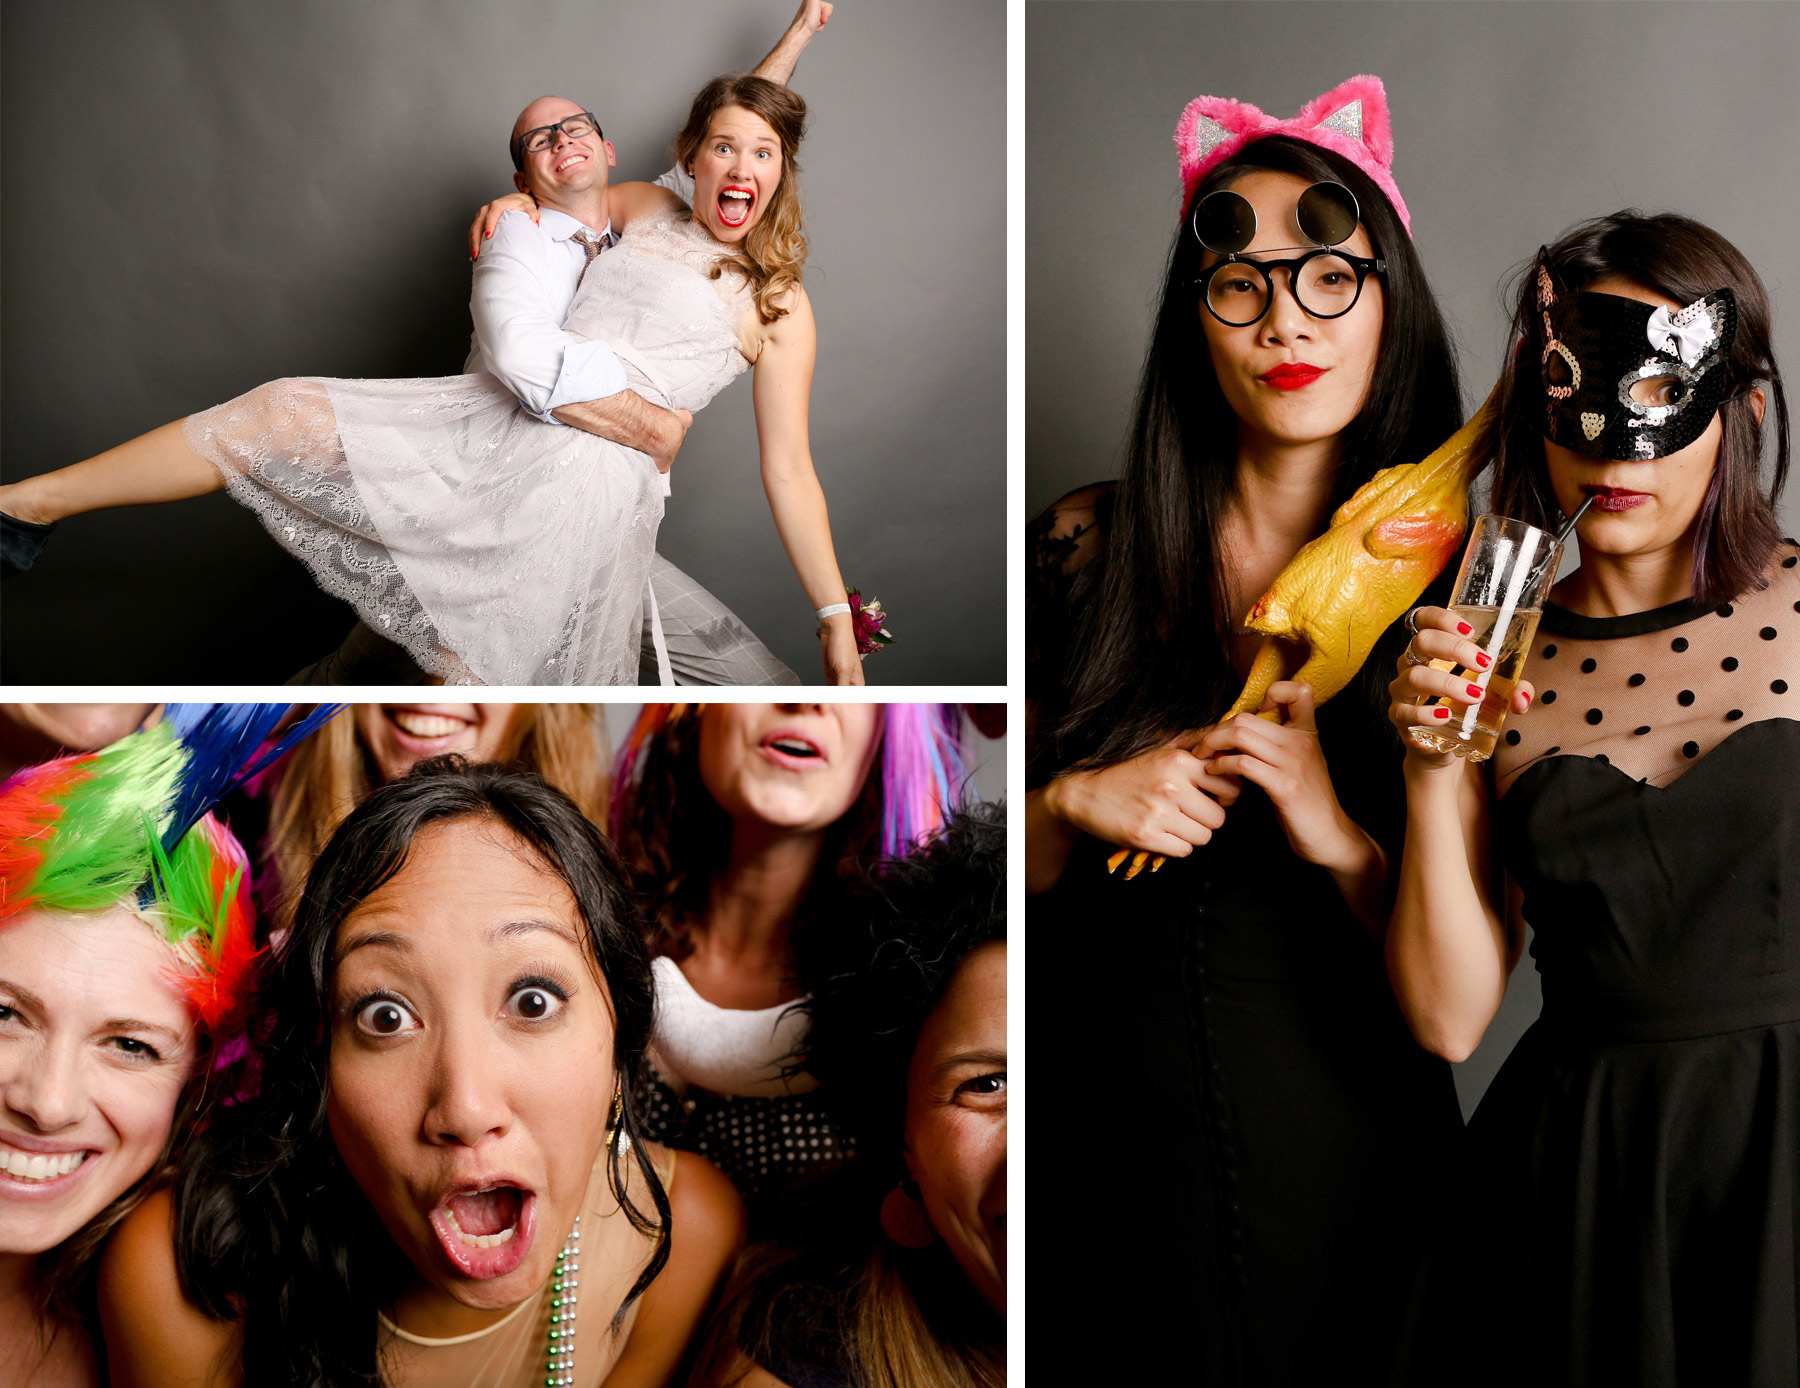 07-Minneapolis-Minnesota-Wedding-Photography-by-Vick-Photography-Crazy-Cam-Reception-Lafayette-Country-Club-Dance.jpg